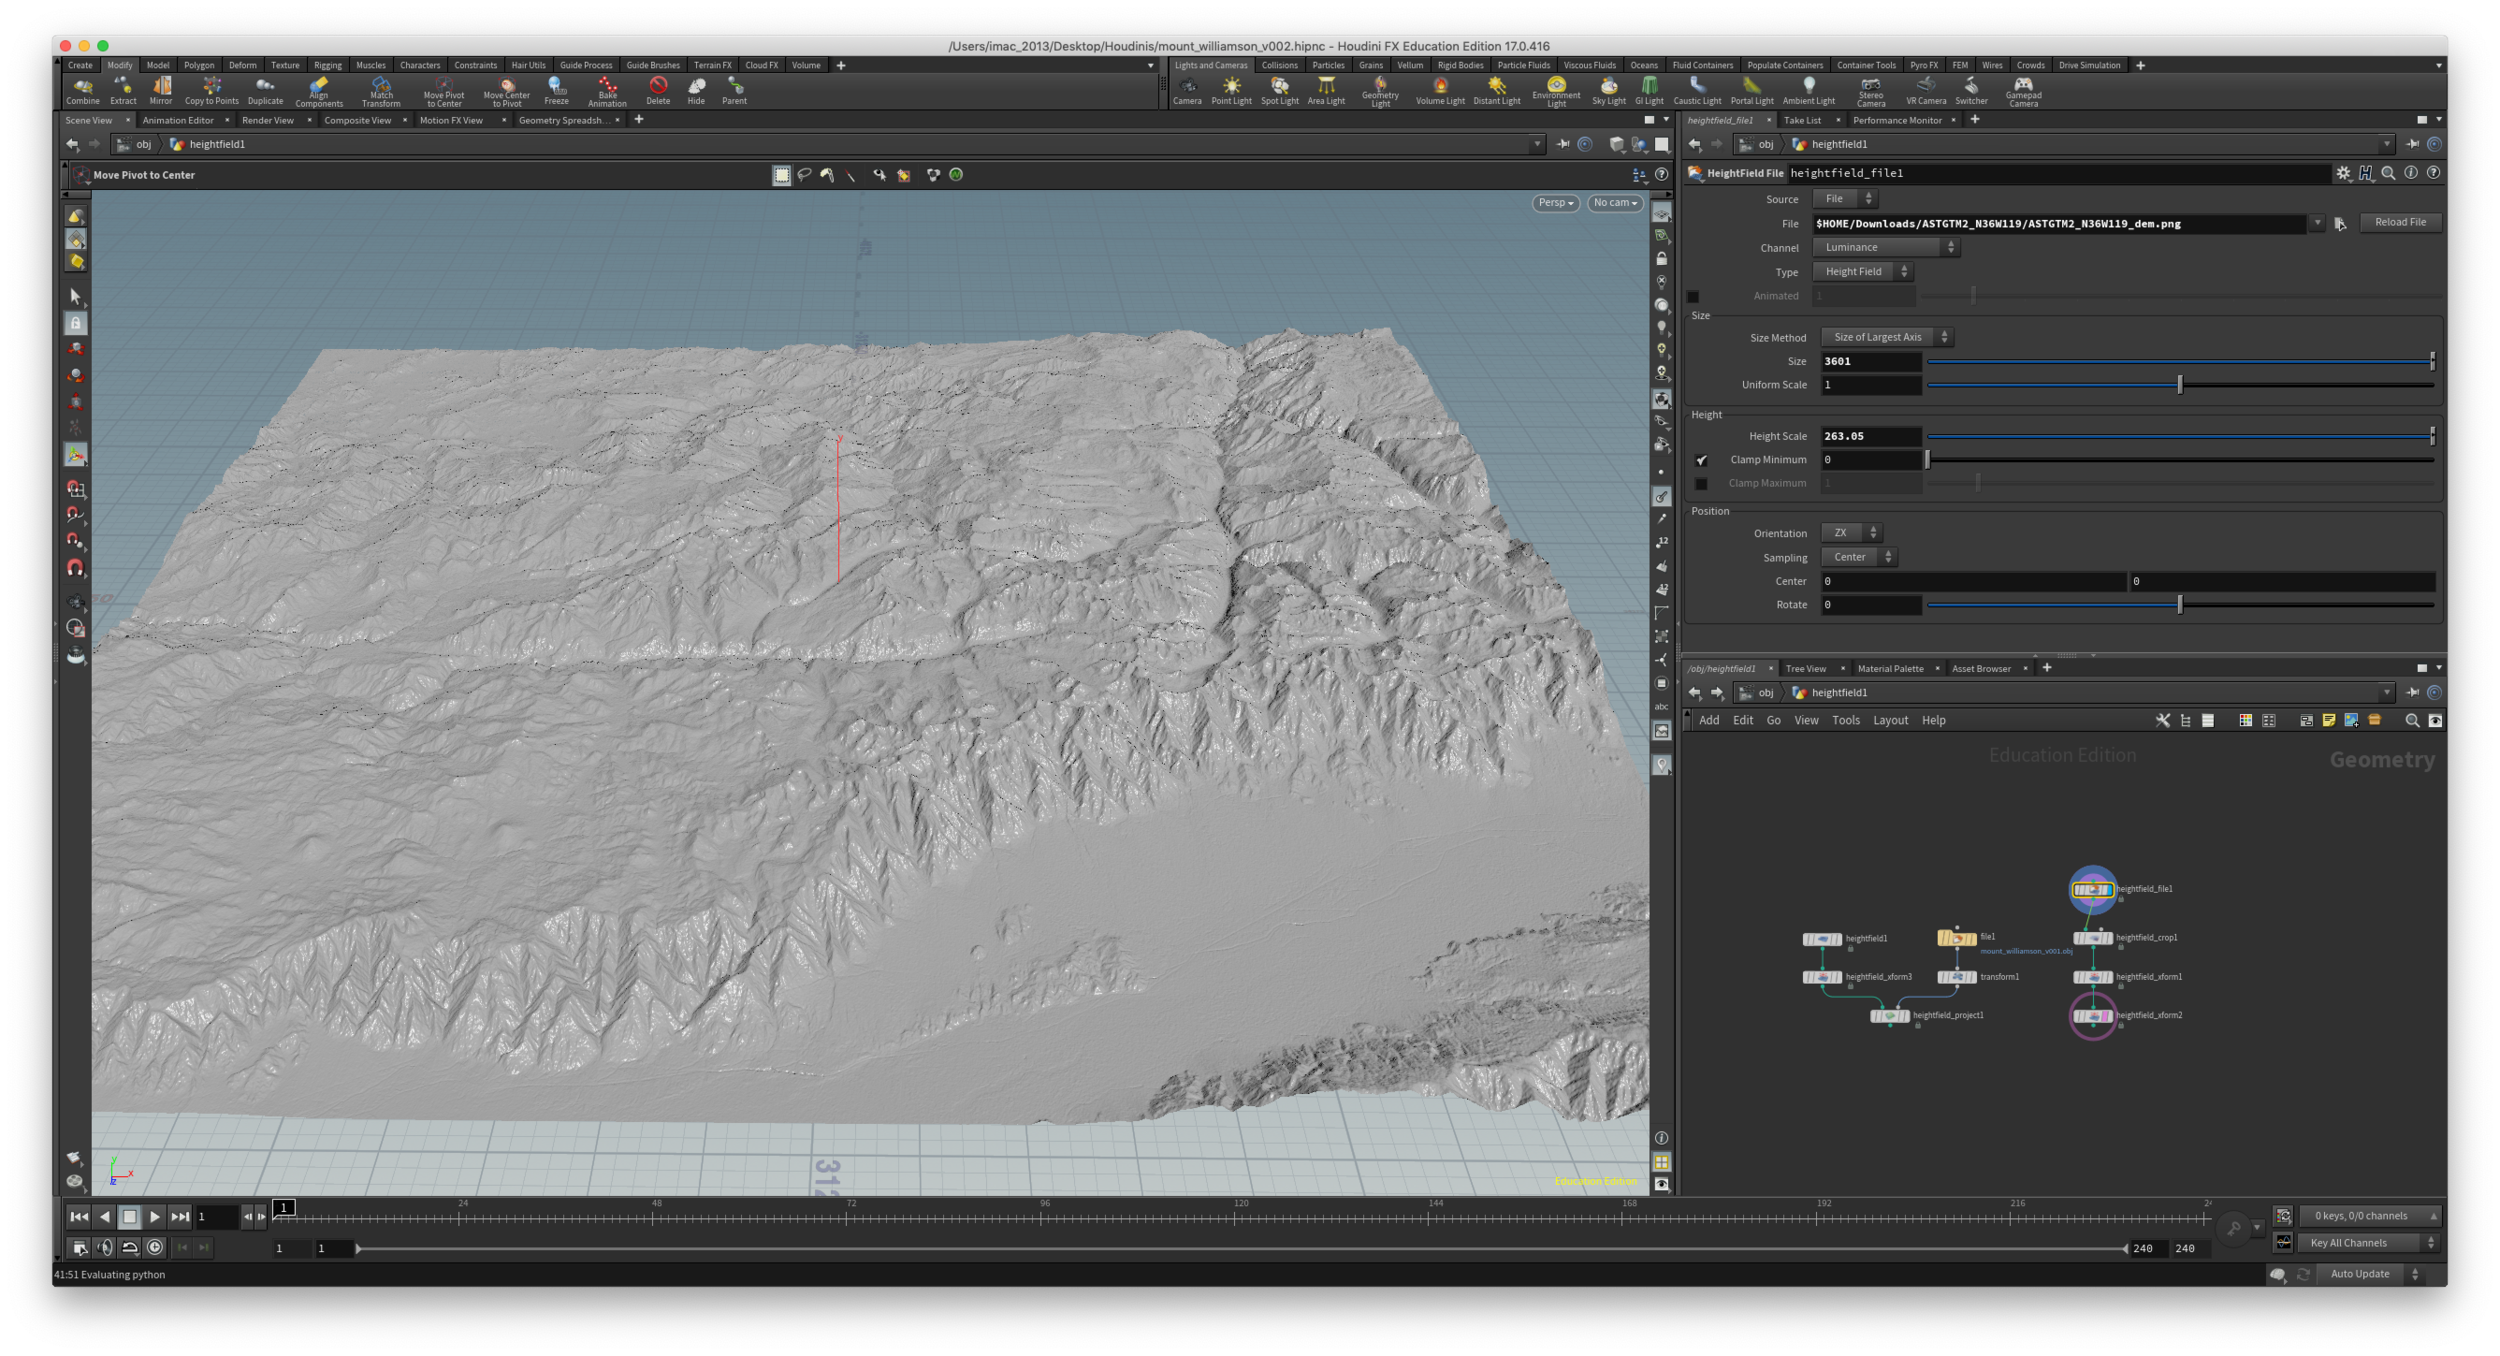 Houdini - geoTIFF - way larger than what I need. 1 degree or 60 sq km.